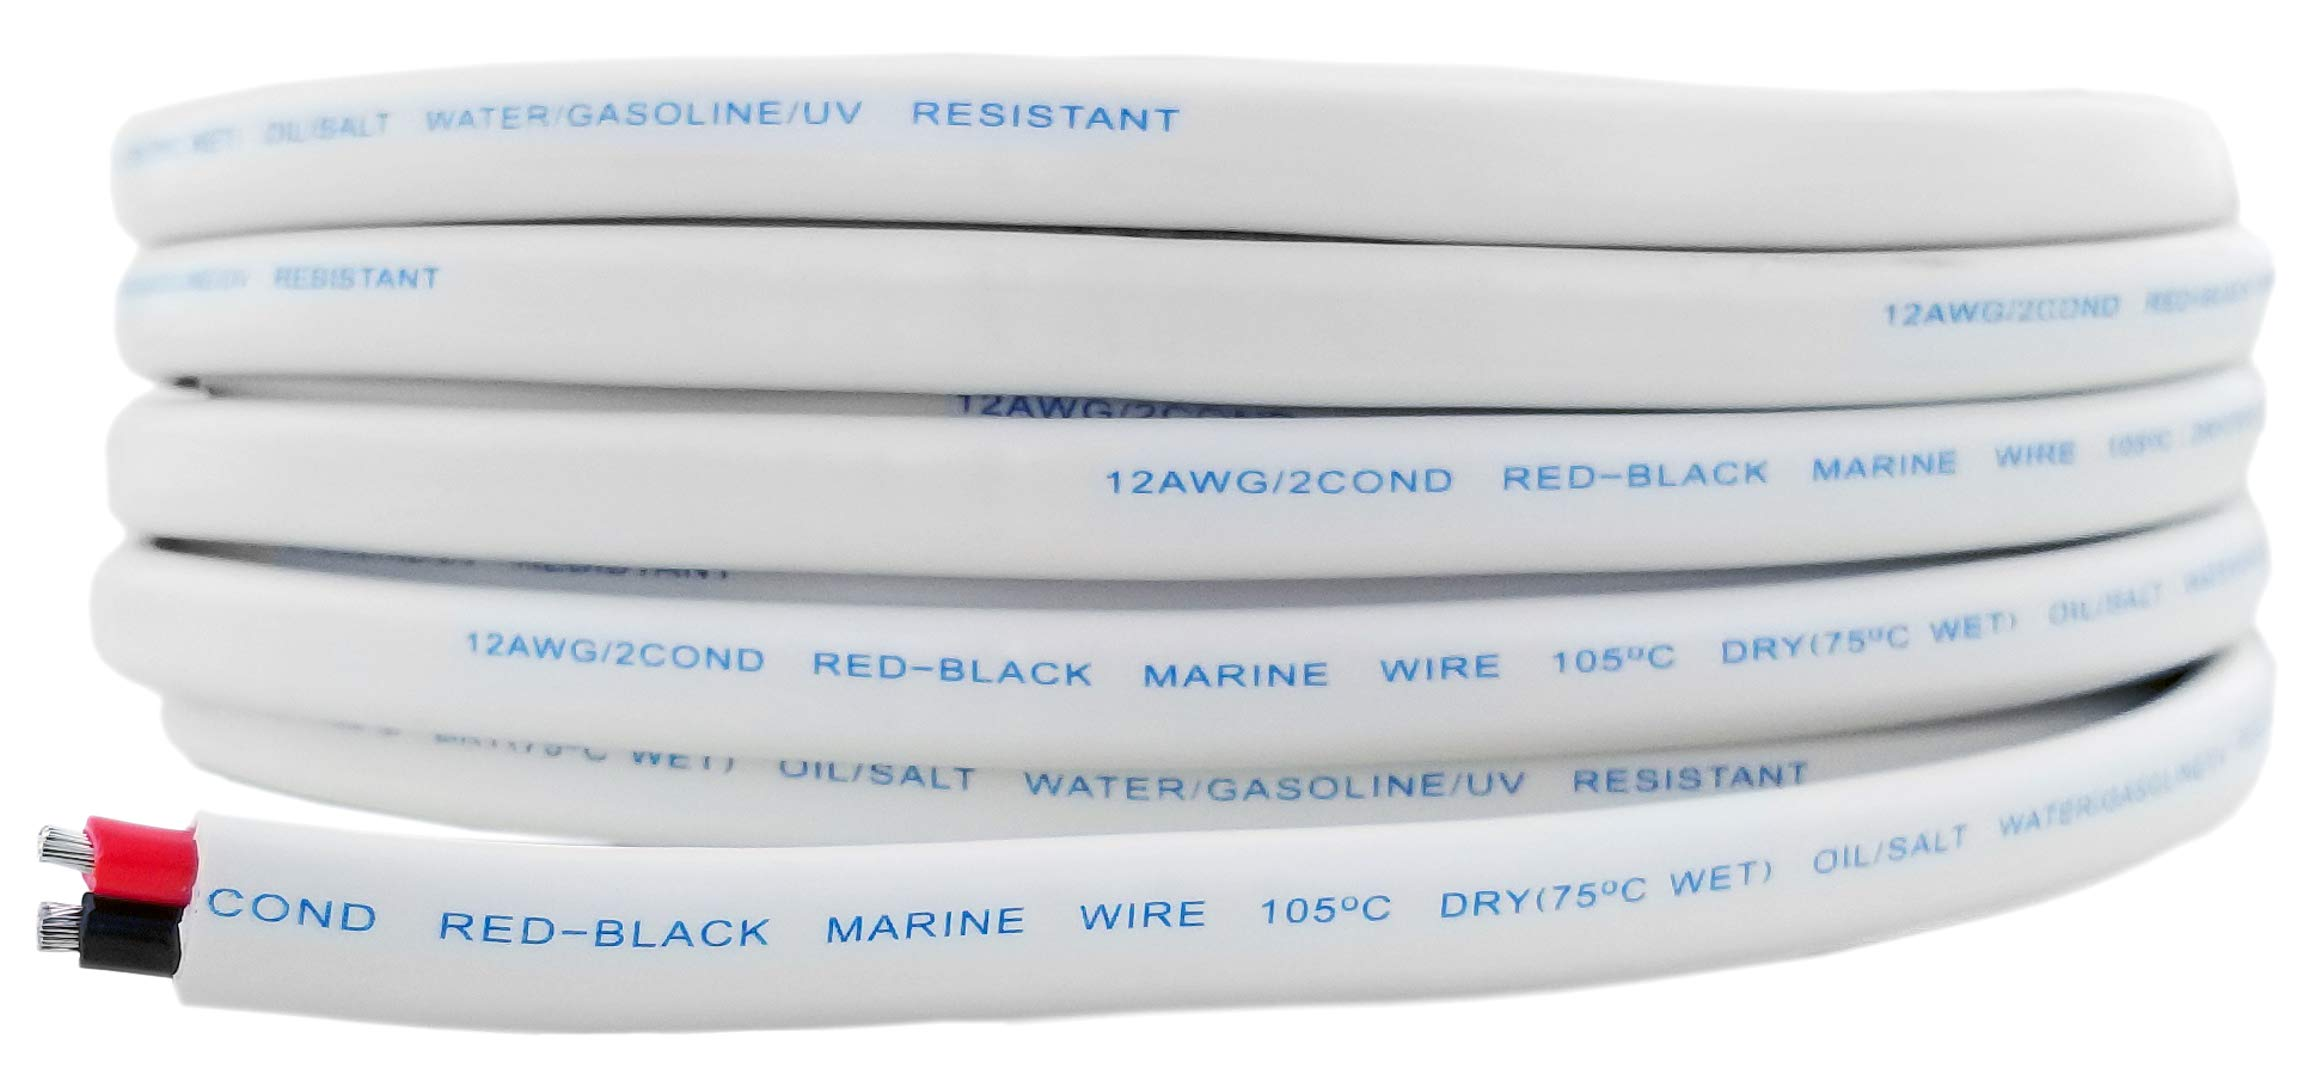 12 AWG (American Wire Gauge) Tinned Oxygen Free Copper OFC Duplex 12/2 Red Black Dual Conductor AC Marine Boat Wire | Cable Length: 100 FT (Also Available in 50 FT)